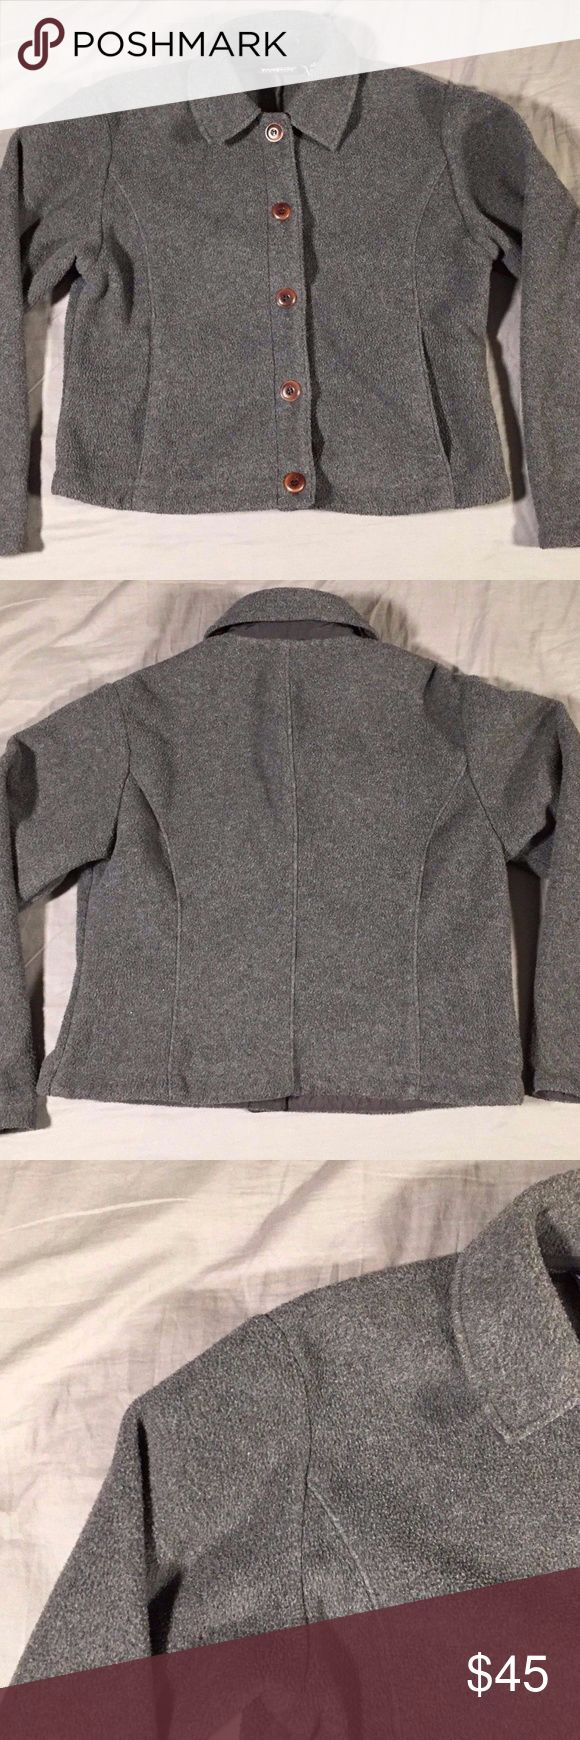 """Patagonia Synchilla Jacket Button Up Charcoal Gray Patagonia Synchilla Jacket Button Up Charcoal Gray Size Medium Good, pre-owned condition  Measurements: Pit to Pit: 20"""" Waist: 18.5"""" Length: 19.5"""" Sleeve Length: 22.5"""" Patagonia Jackets & Coats"""